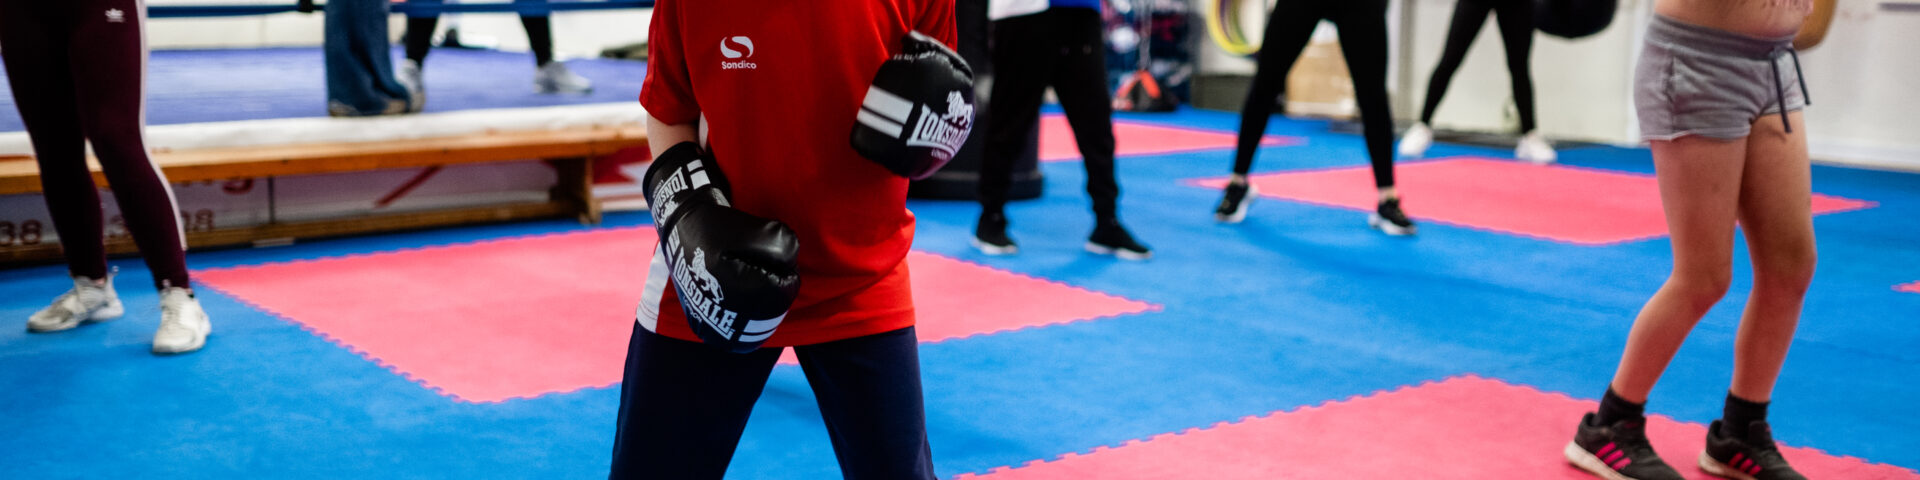 young girl in boxing class